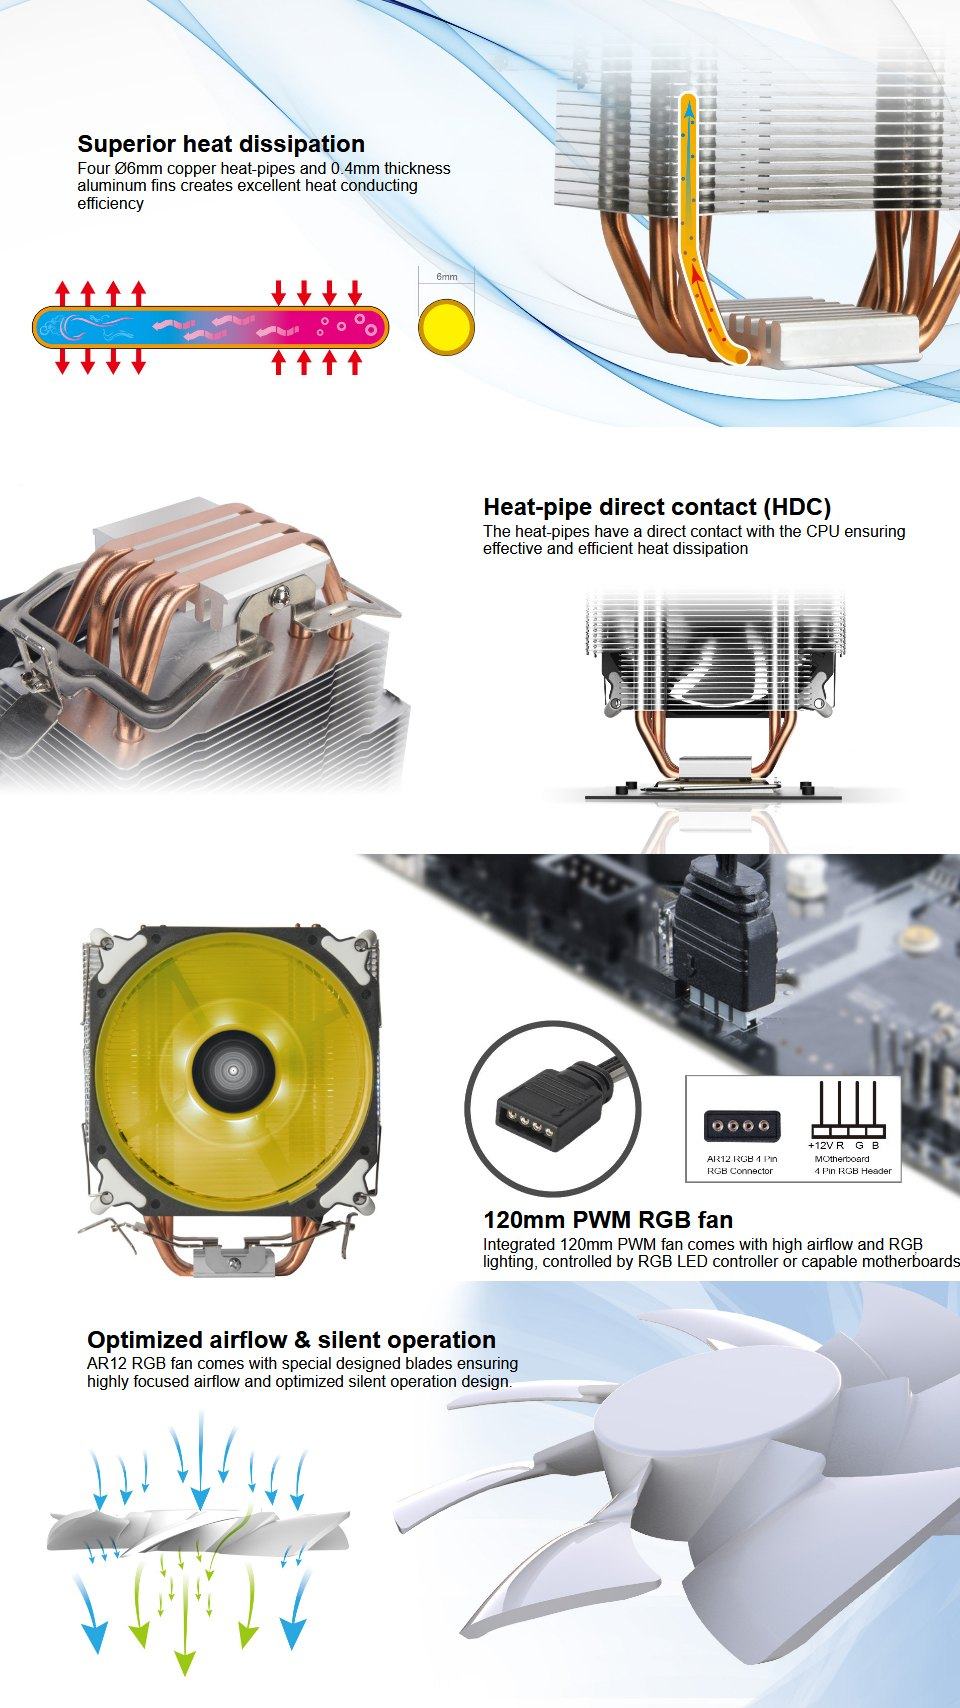 SilverStone AR12 RGB CPU Cooler features